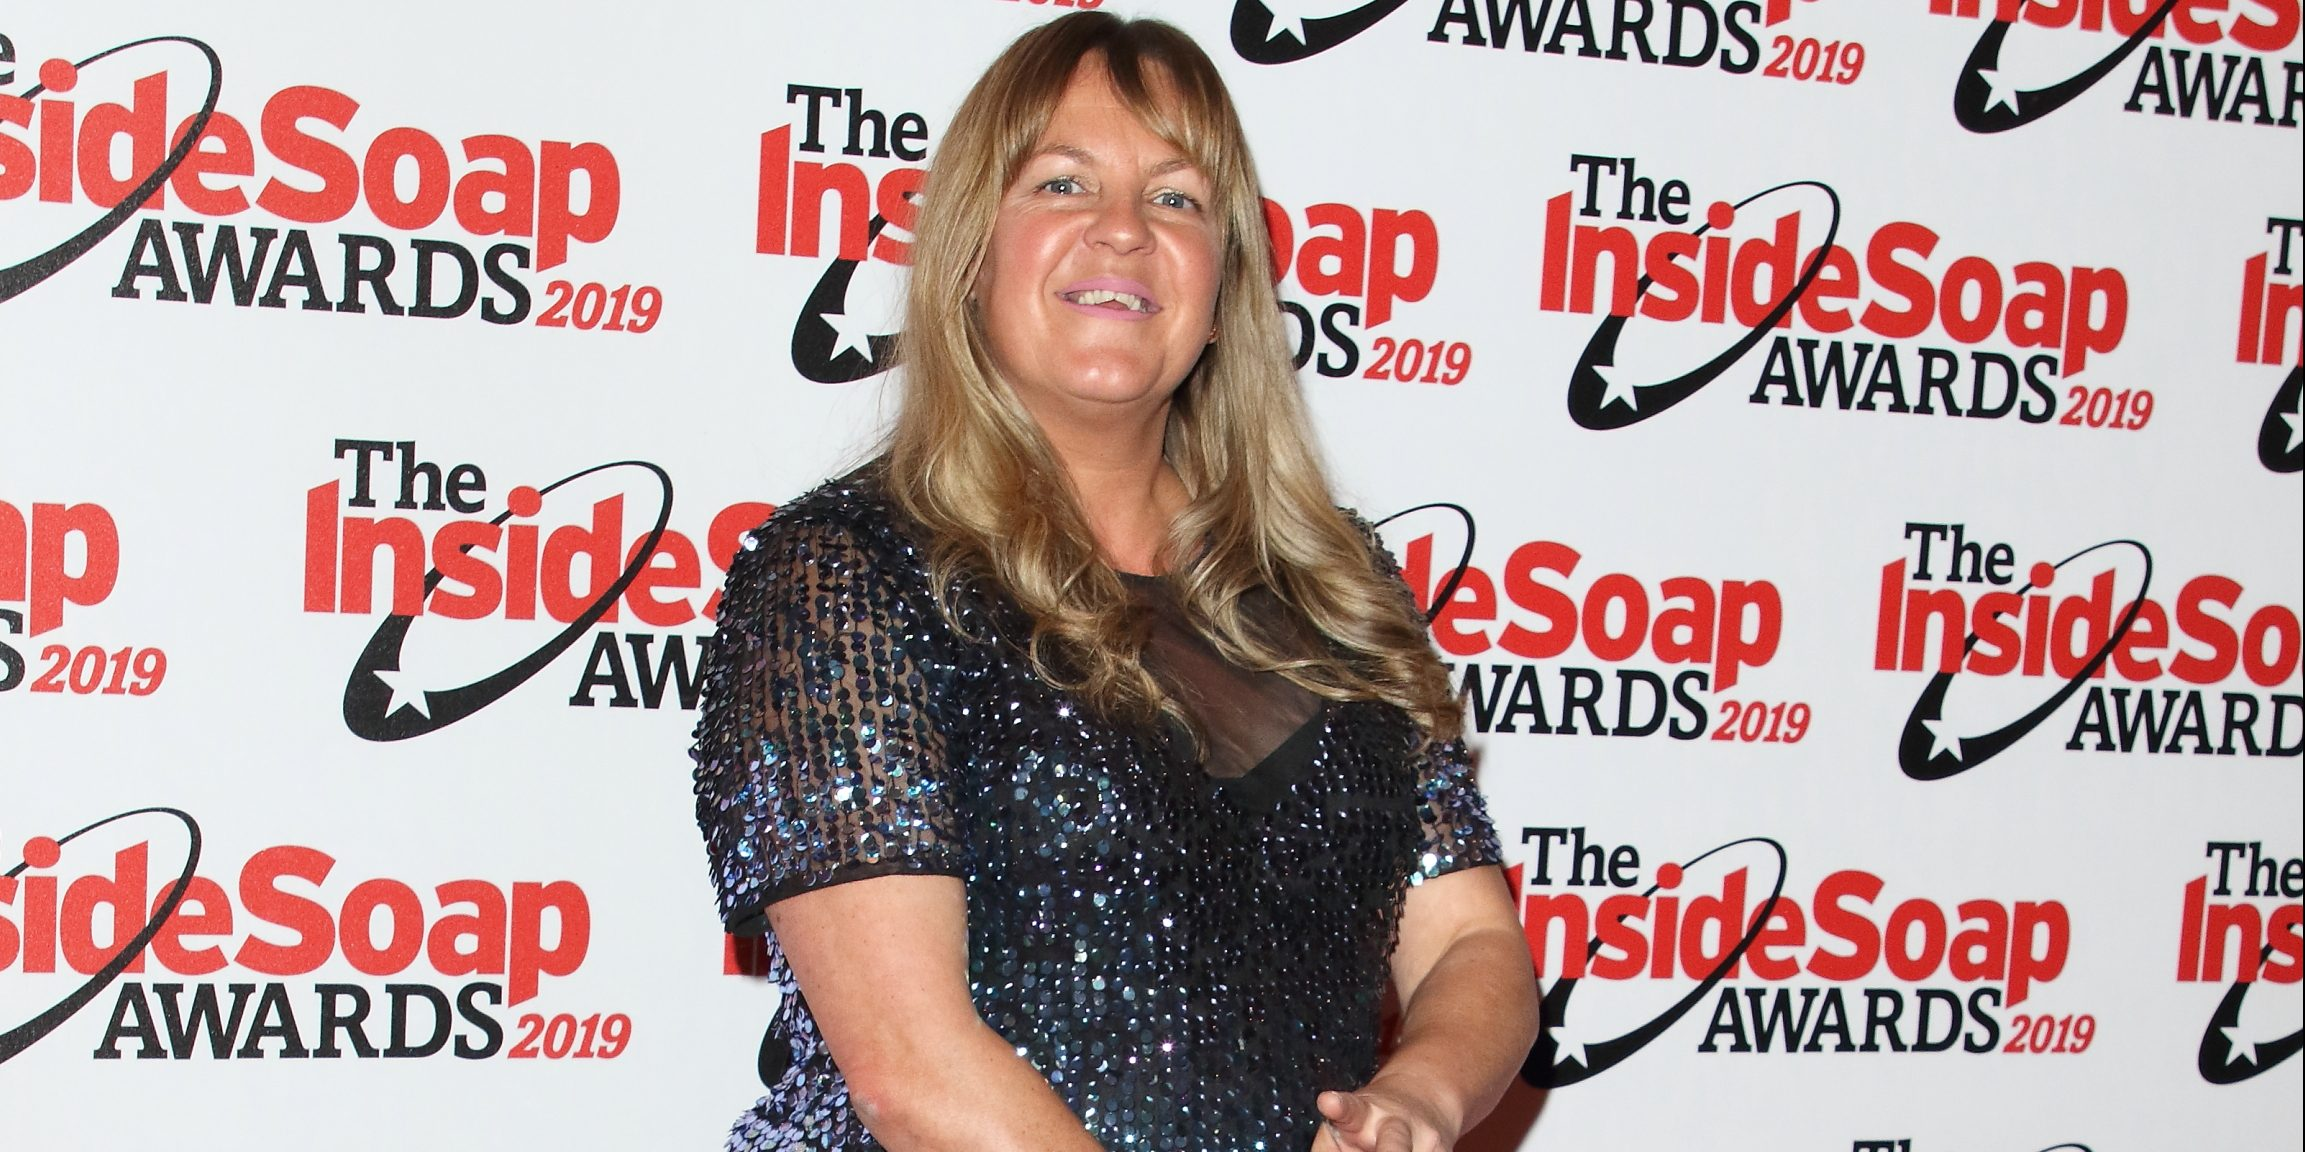 EastEnders' Lorraine Stanley wishes partner happy anniversary with hilarious picture